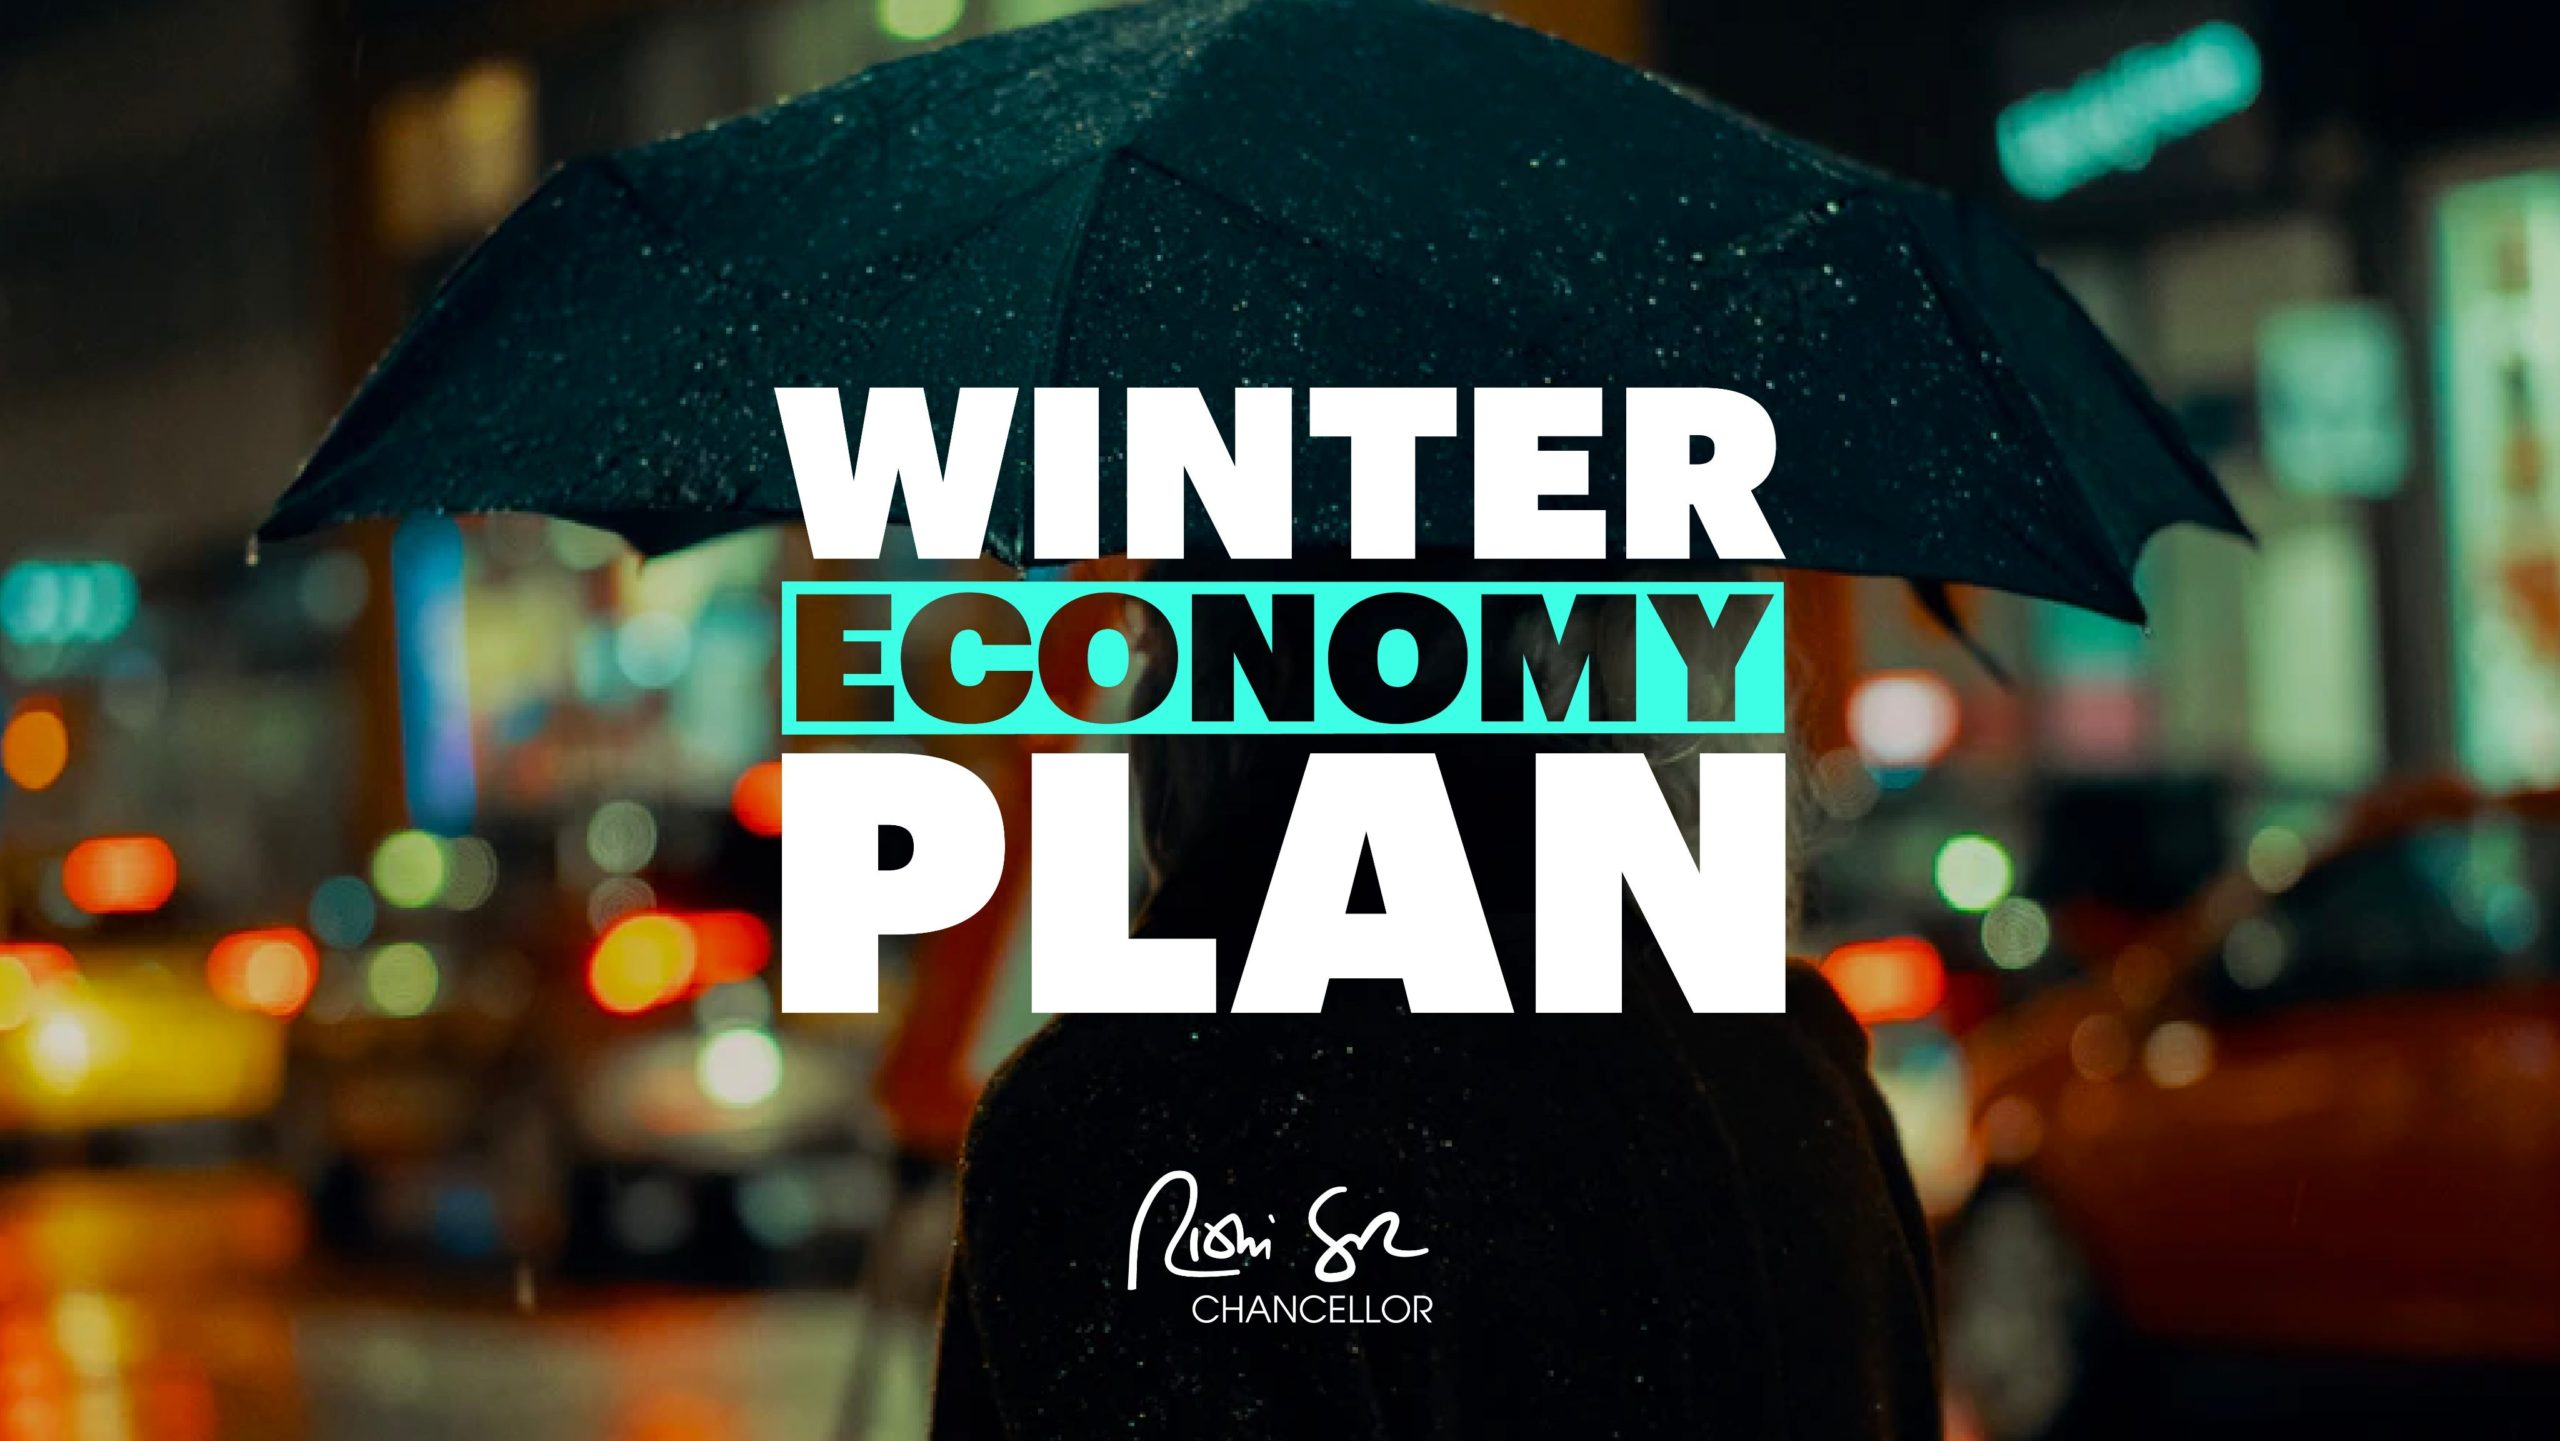 Winter Economy Plan: A guide for small businesses